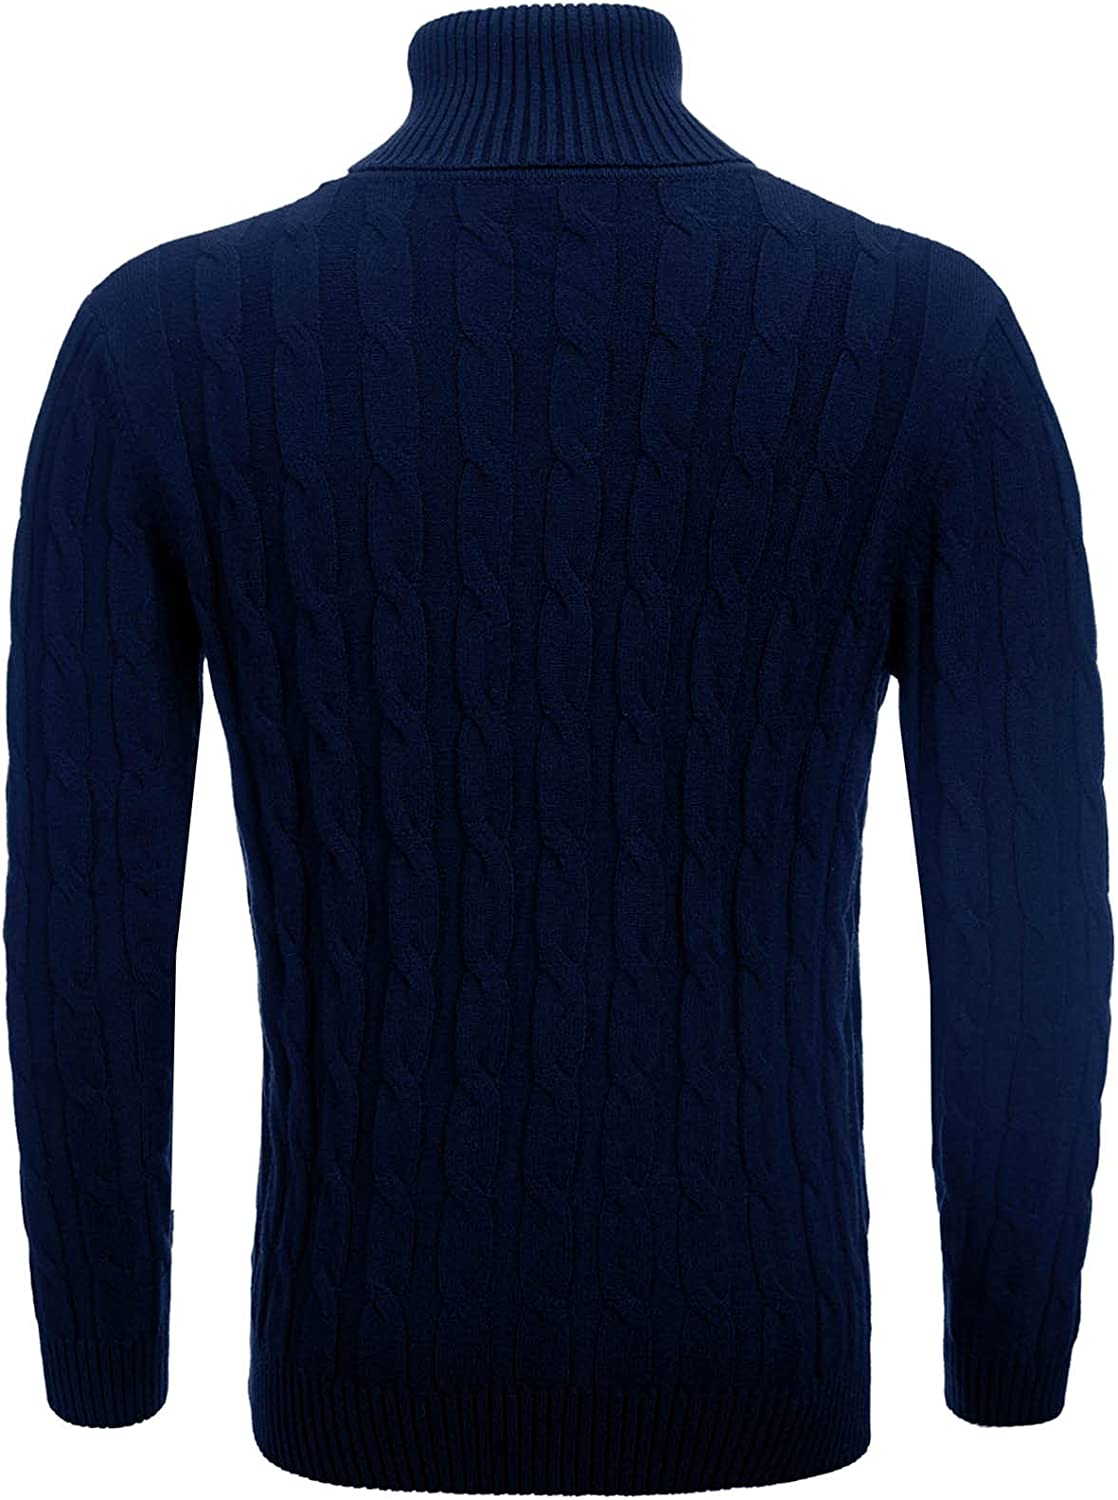 Men Solid Turtleneck Casual Slim Fit Long-Sleeved Tops Fashion Warm Pullover Soft Strench Knitted Sweater